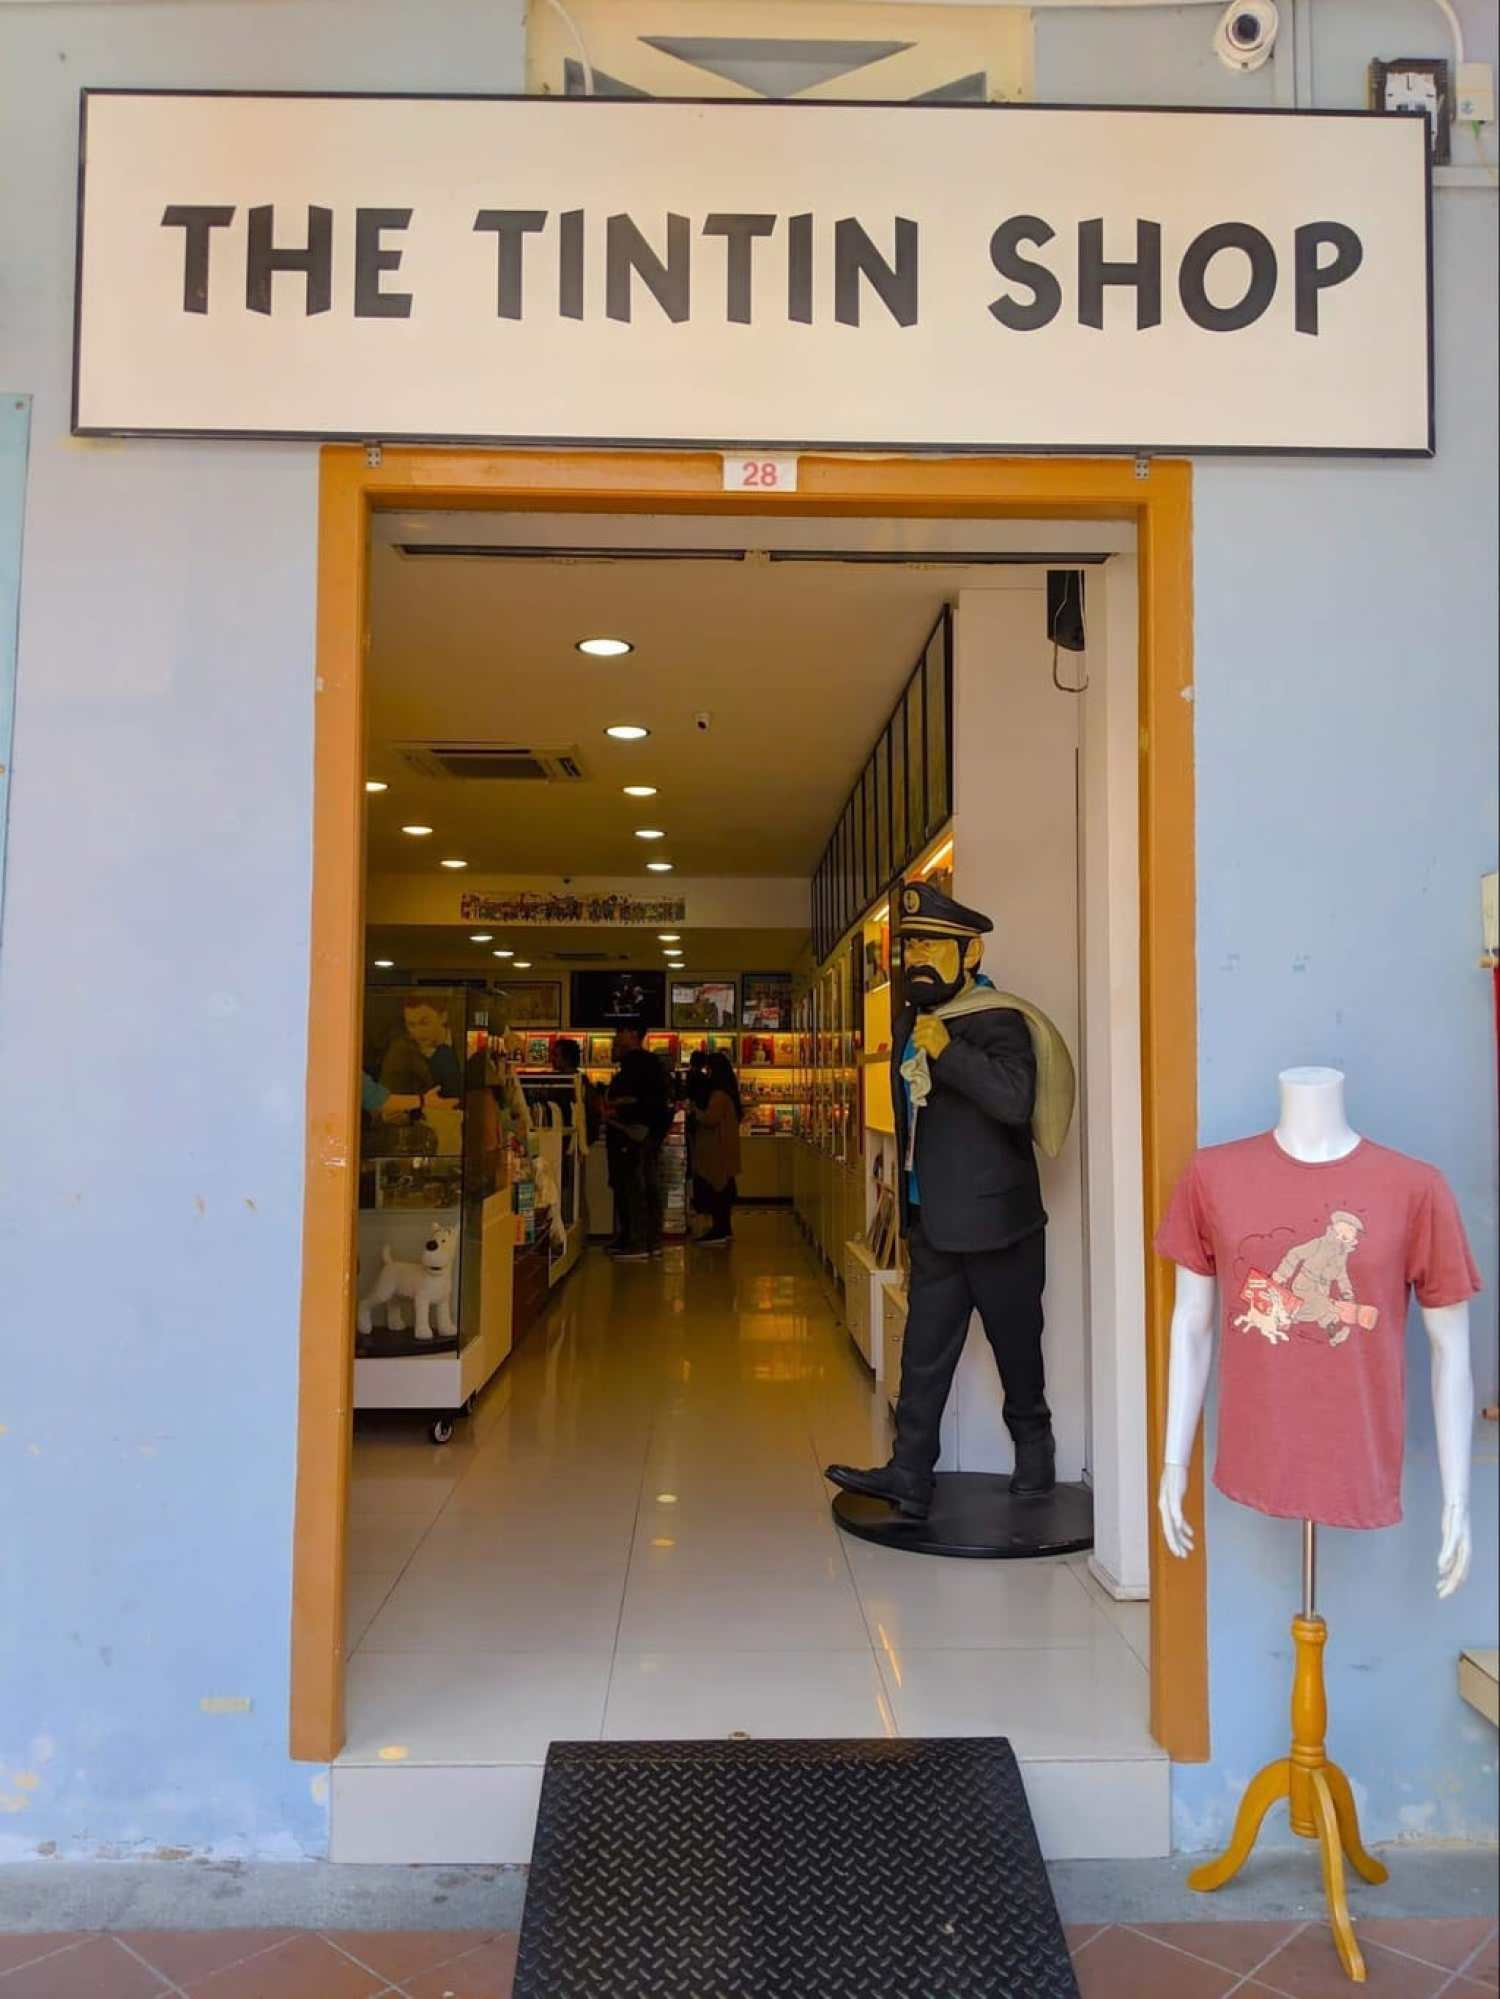 Tintin Shop entrance